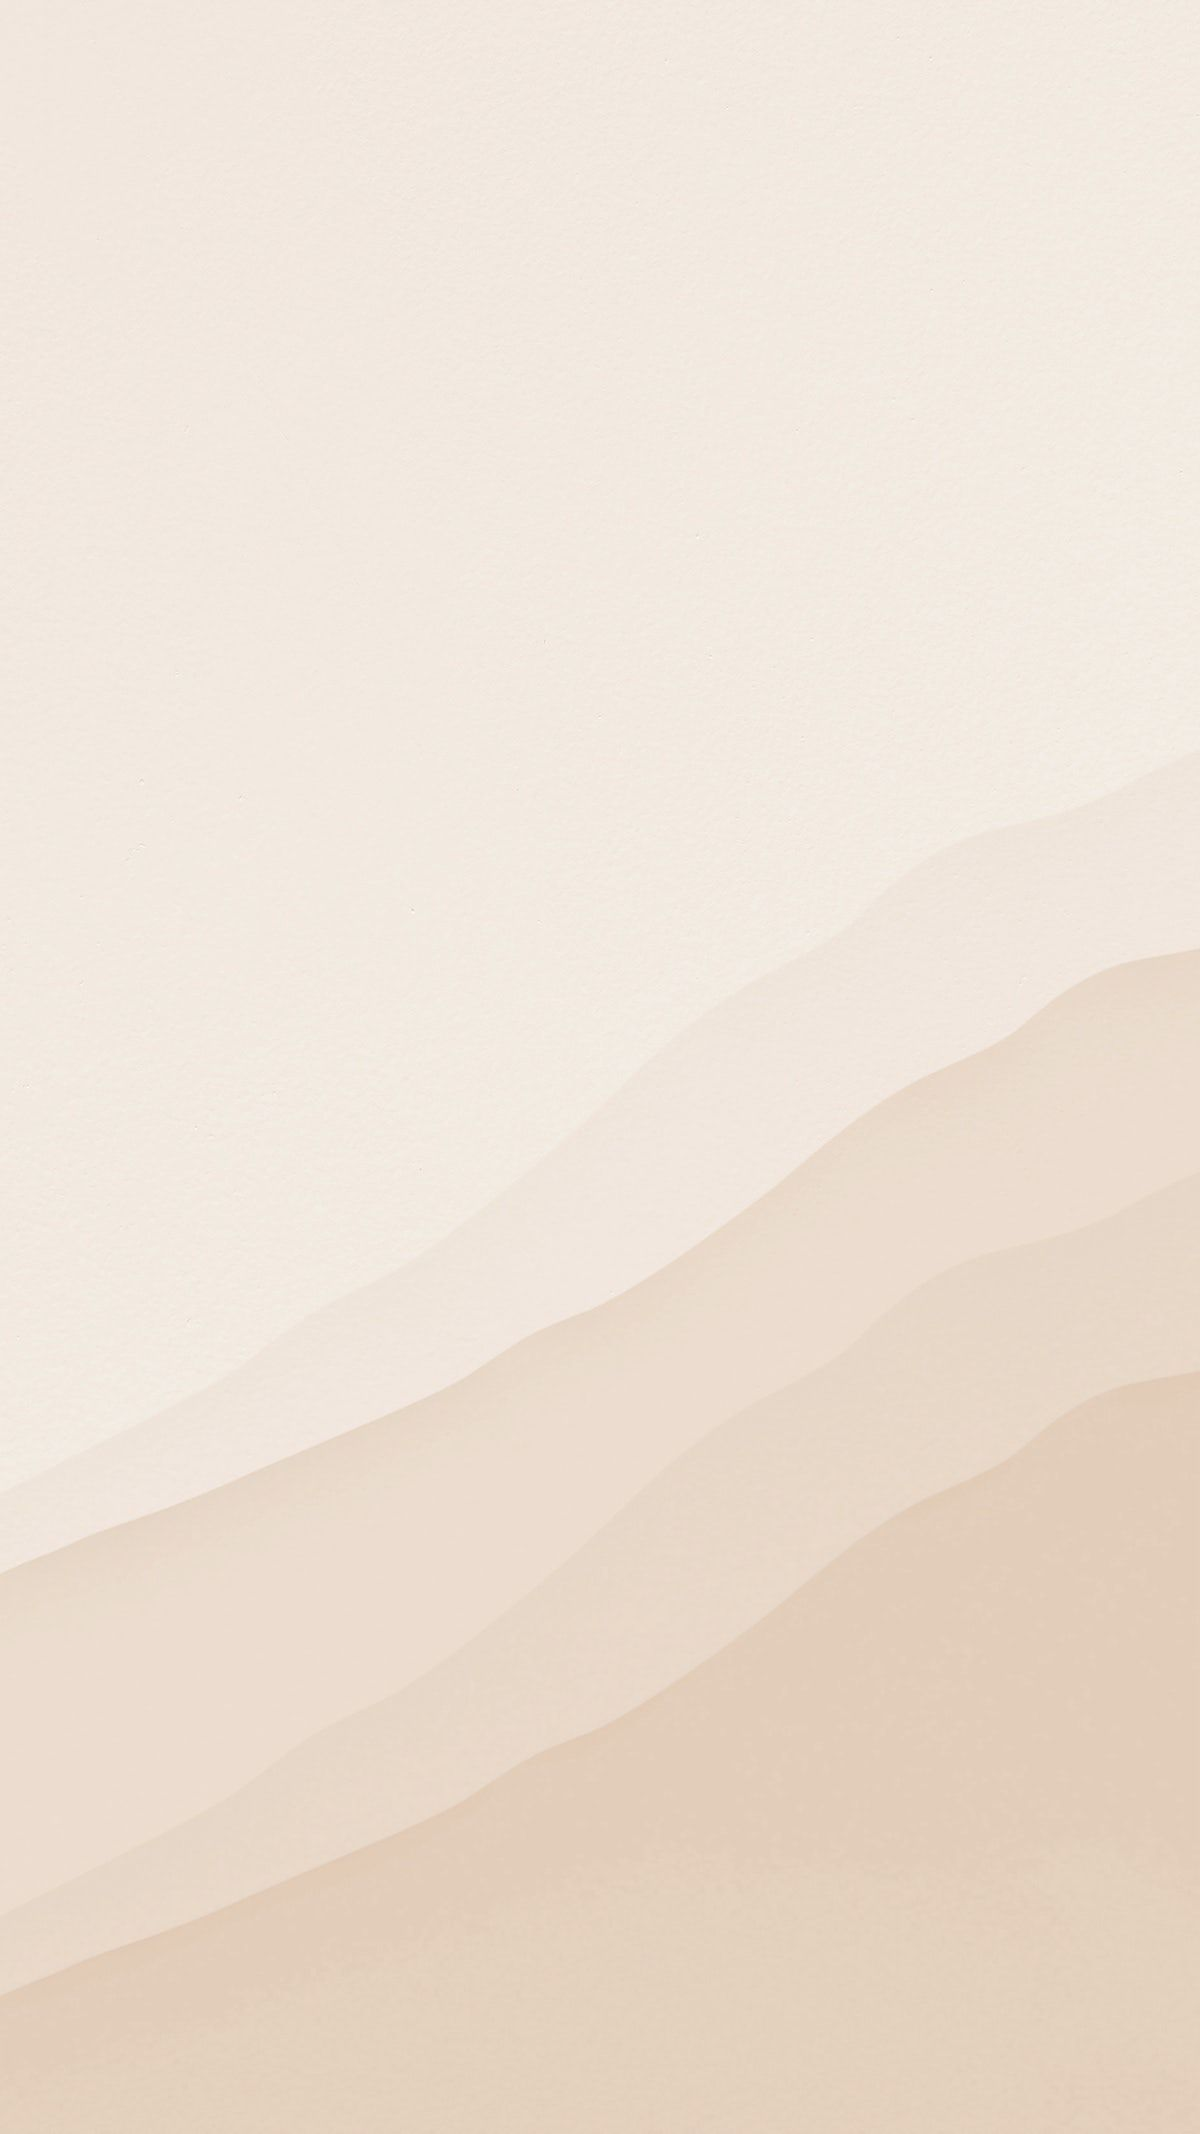 Download free image of Beige abstract wallpaper background image  by Nunny about sand, watercolor mobile phone wallpaper, sand texture, background beige, and Earth tone aesthetic wallpaper 2620044